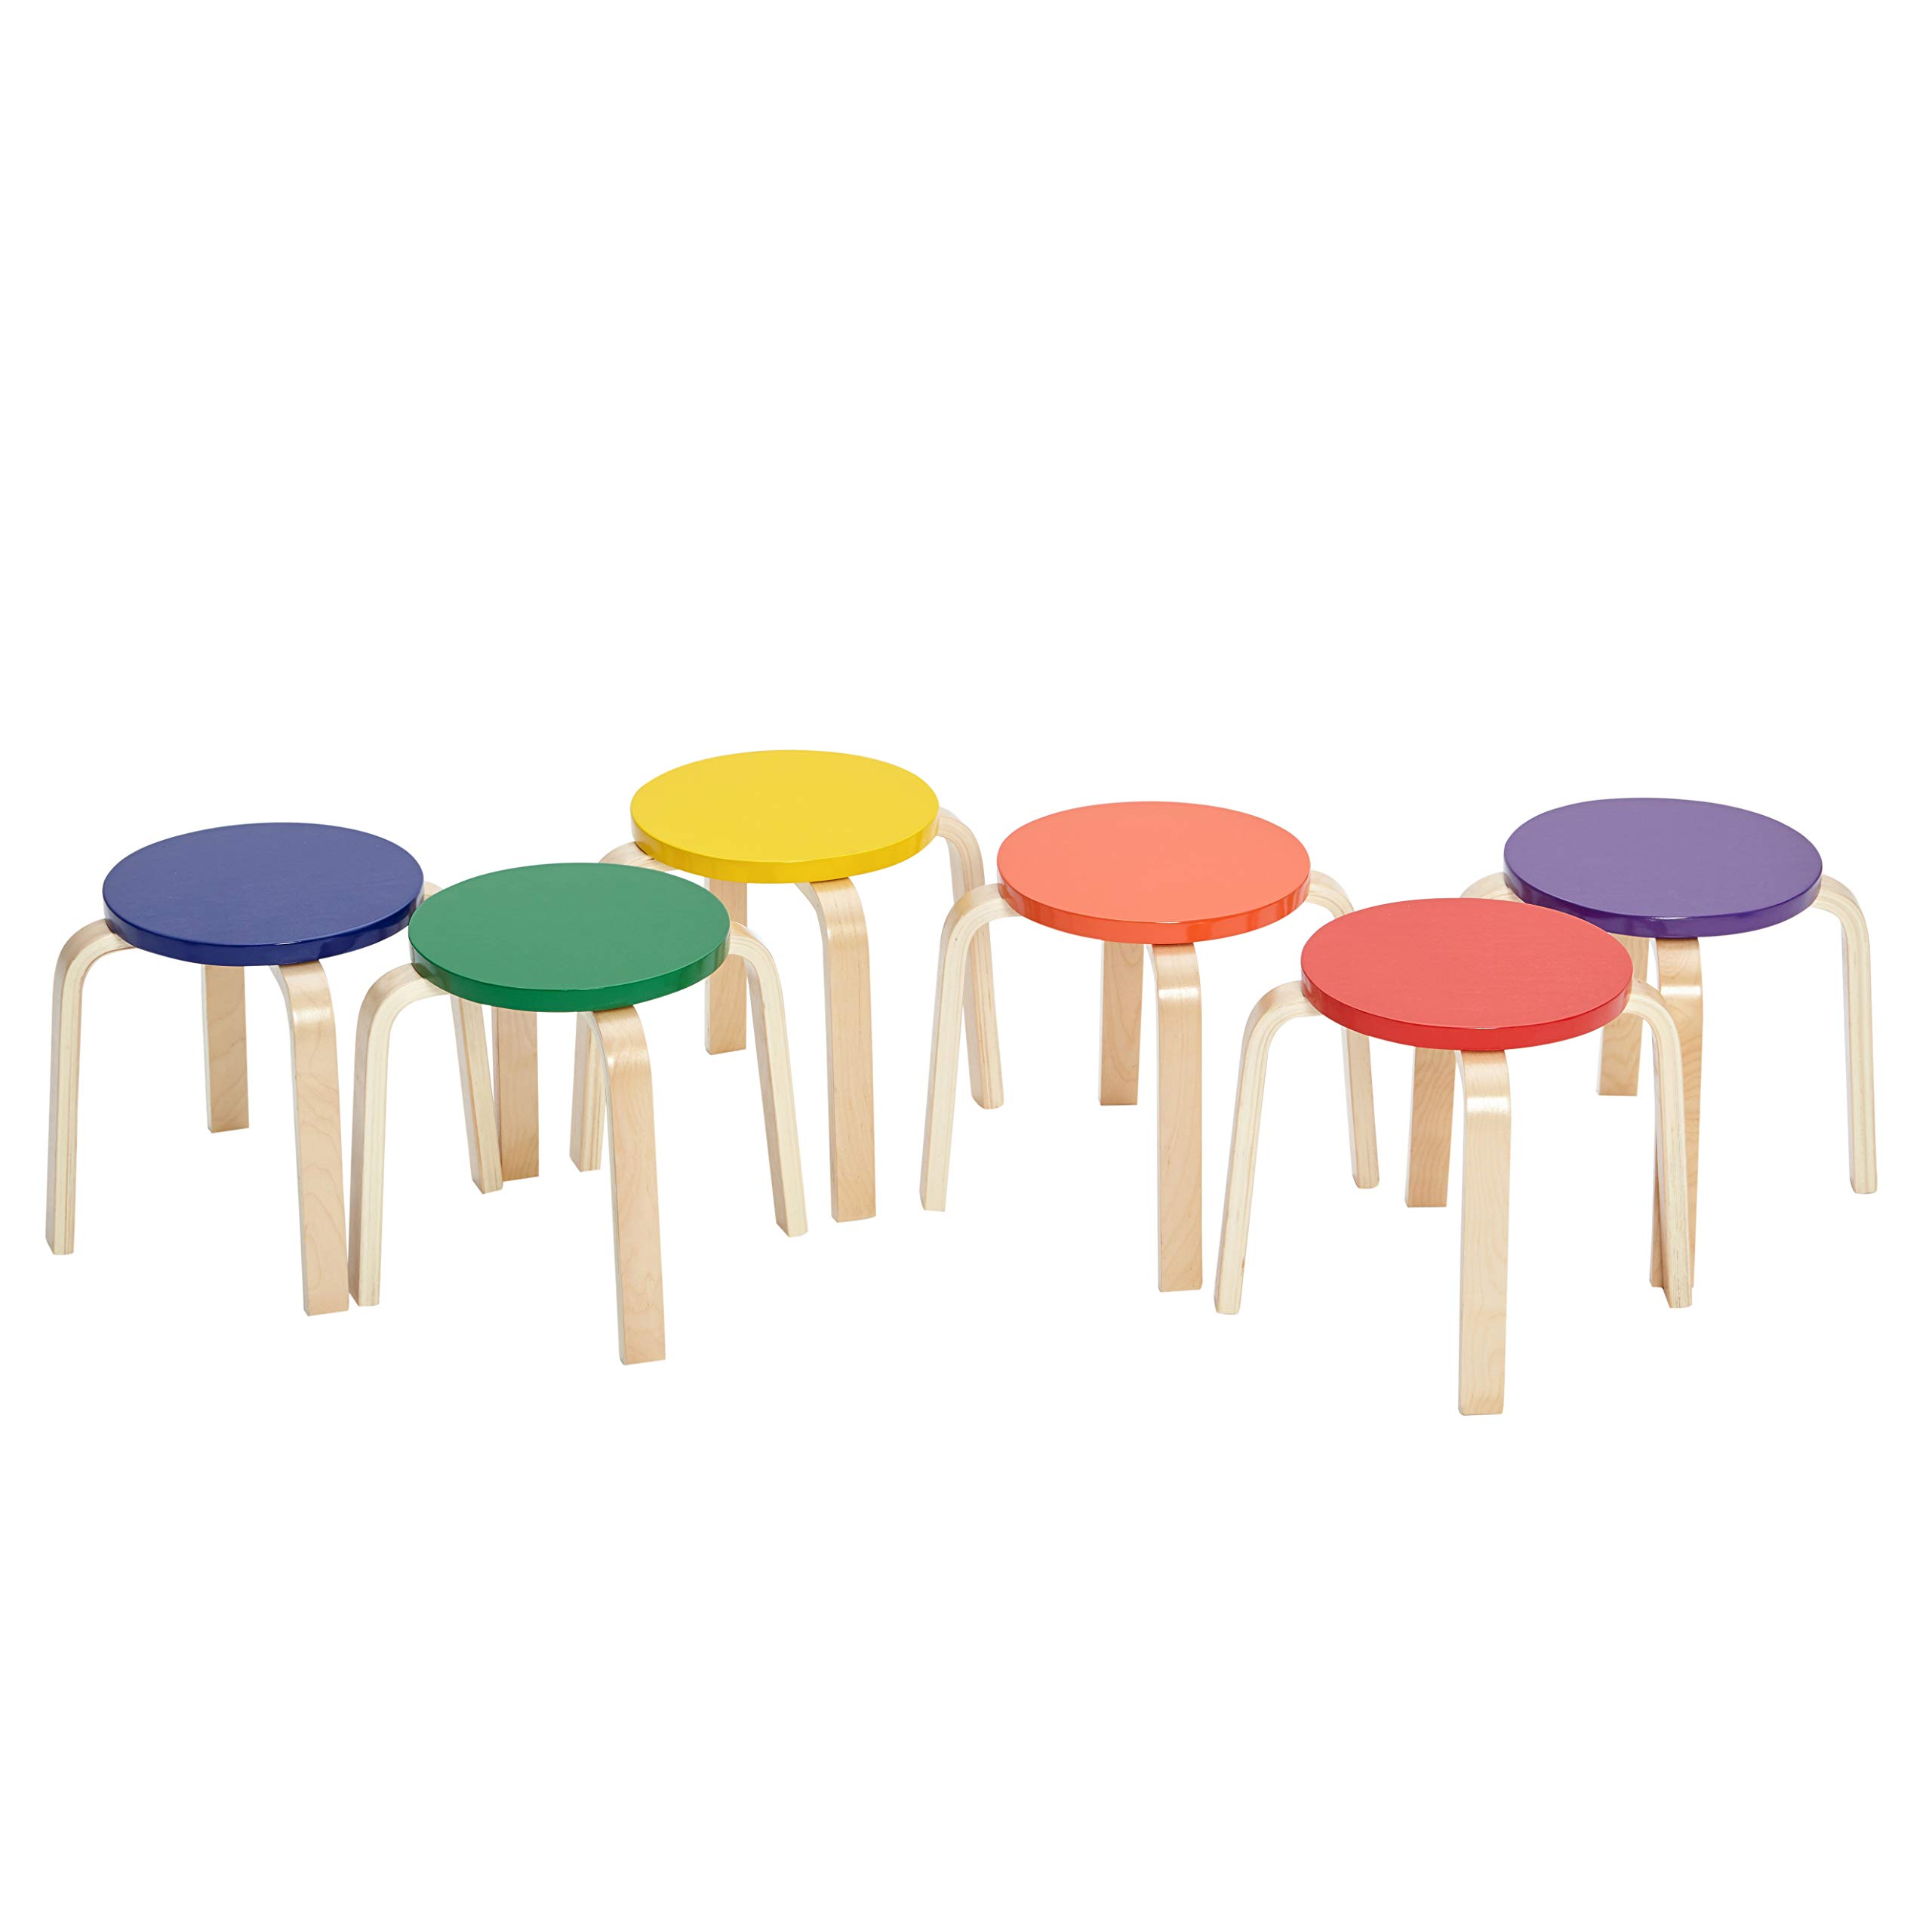 ECR4Kids Bentwood Stacking Stools for Kids, 12'' H, Assorted (6-Piece Set) by ECR4Kids (Image #1)